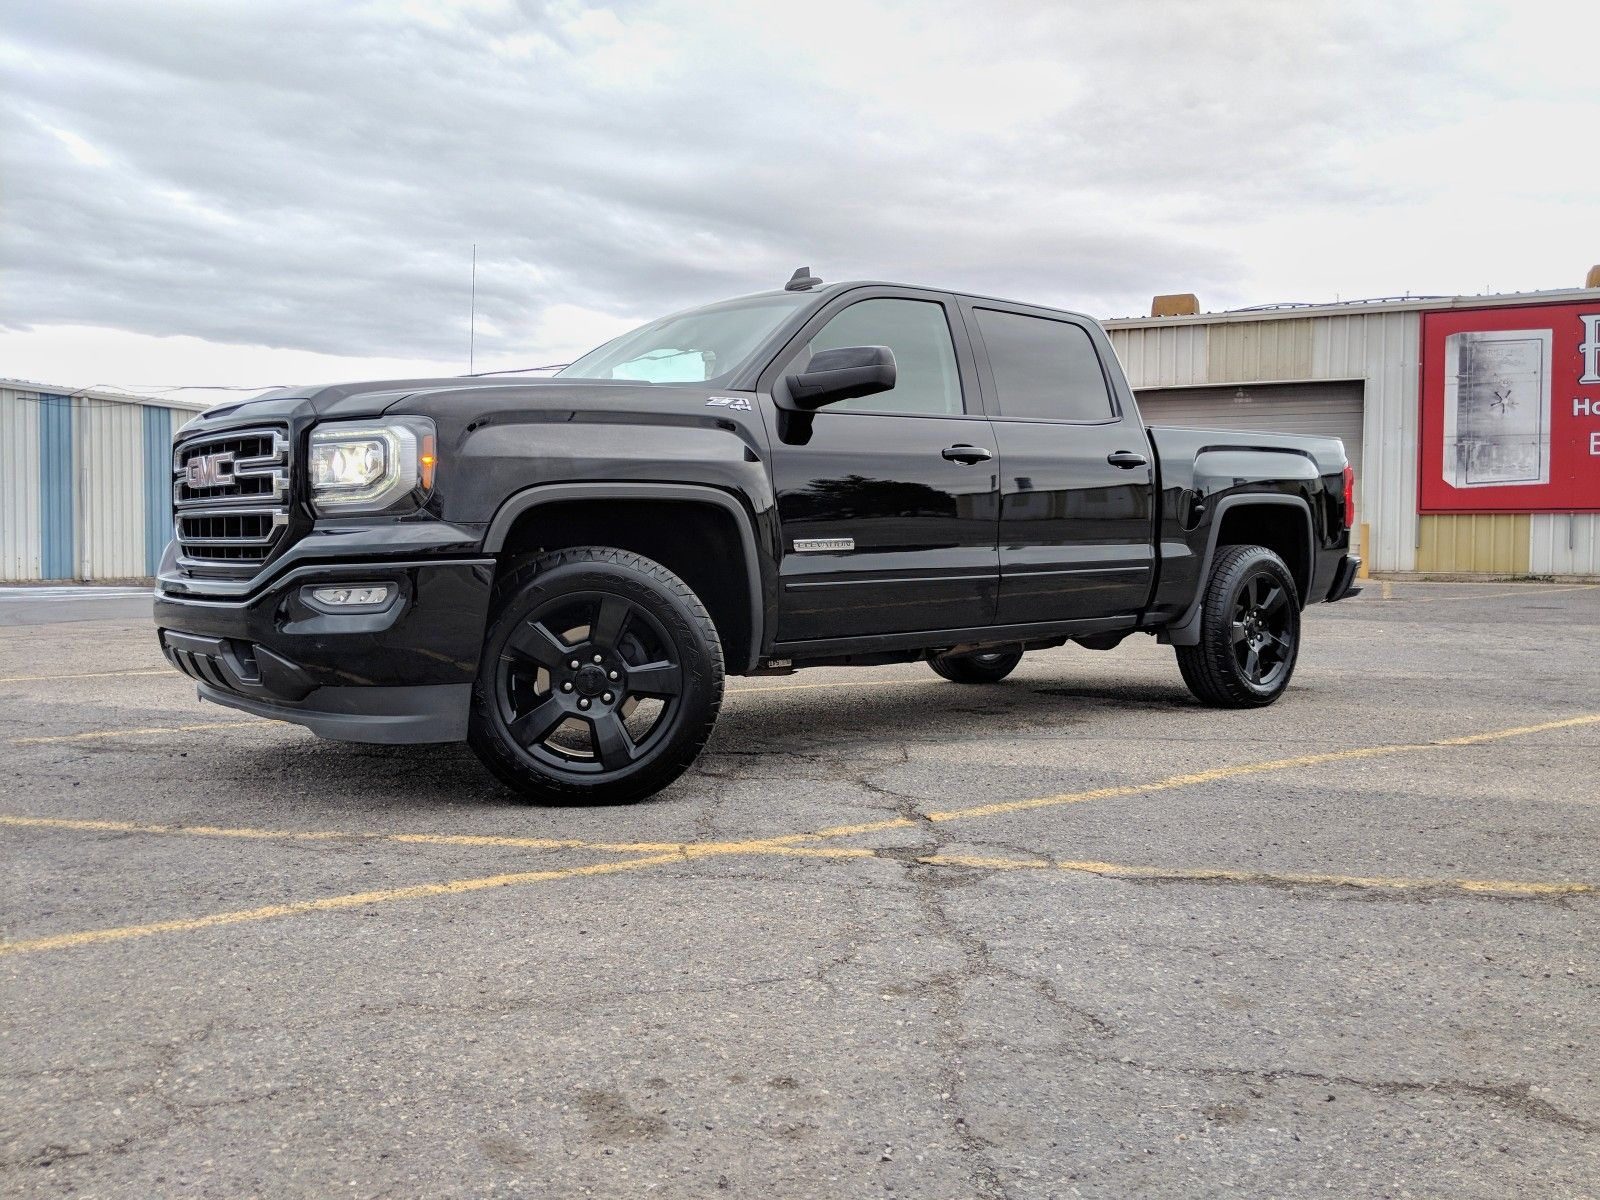 Gmc Sierra 1500 Elevation Edition Sle Utah 2017 Crew Cab 4x4 Onyx Blacked Out Gmc Gmc Sierra Chevy Trucks